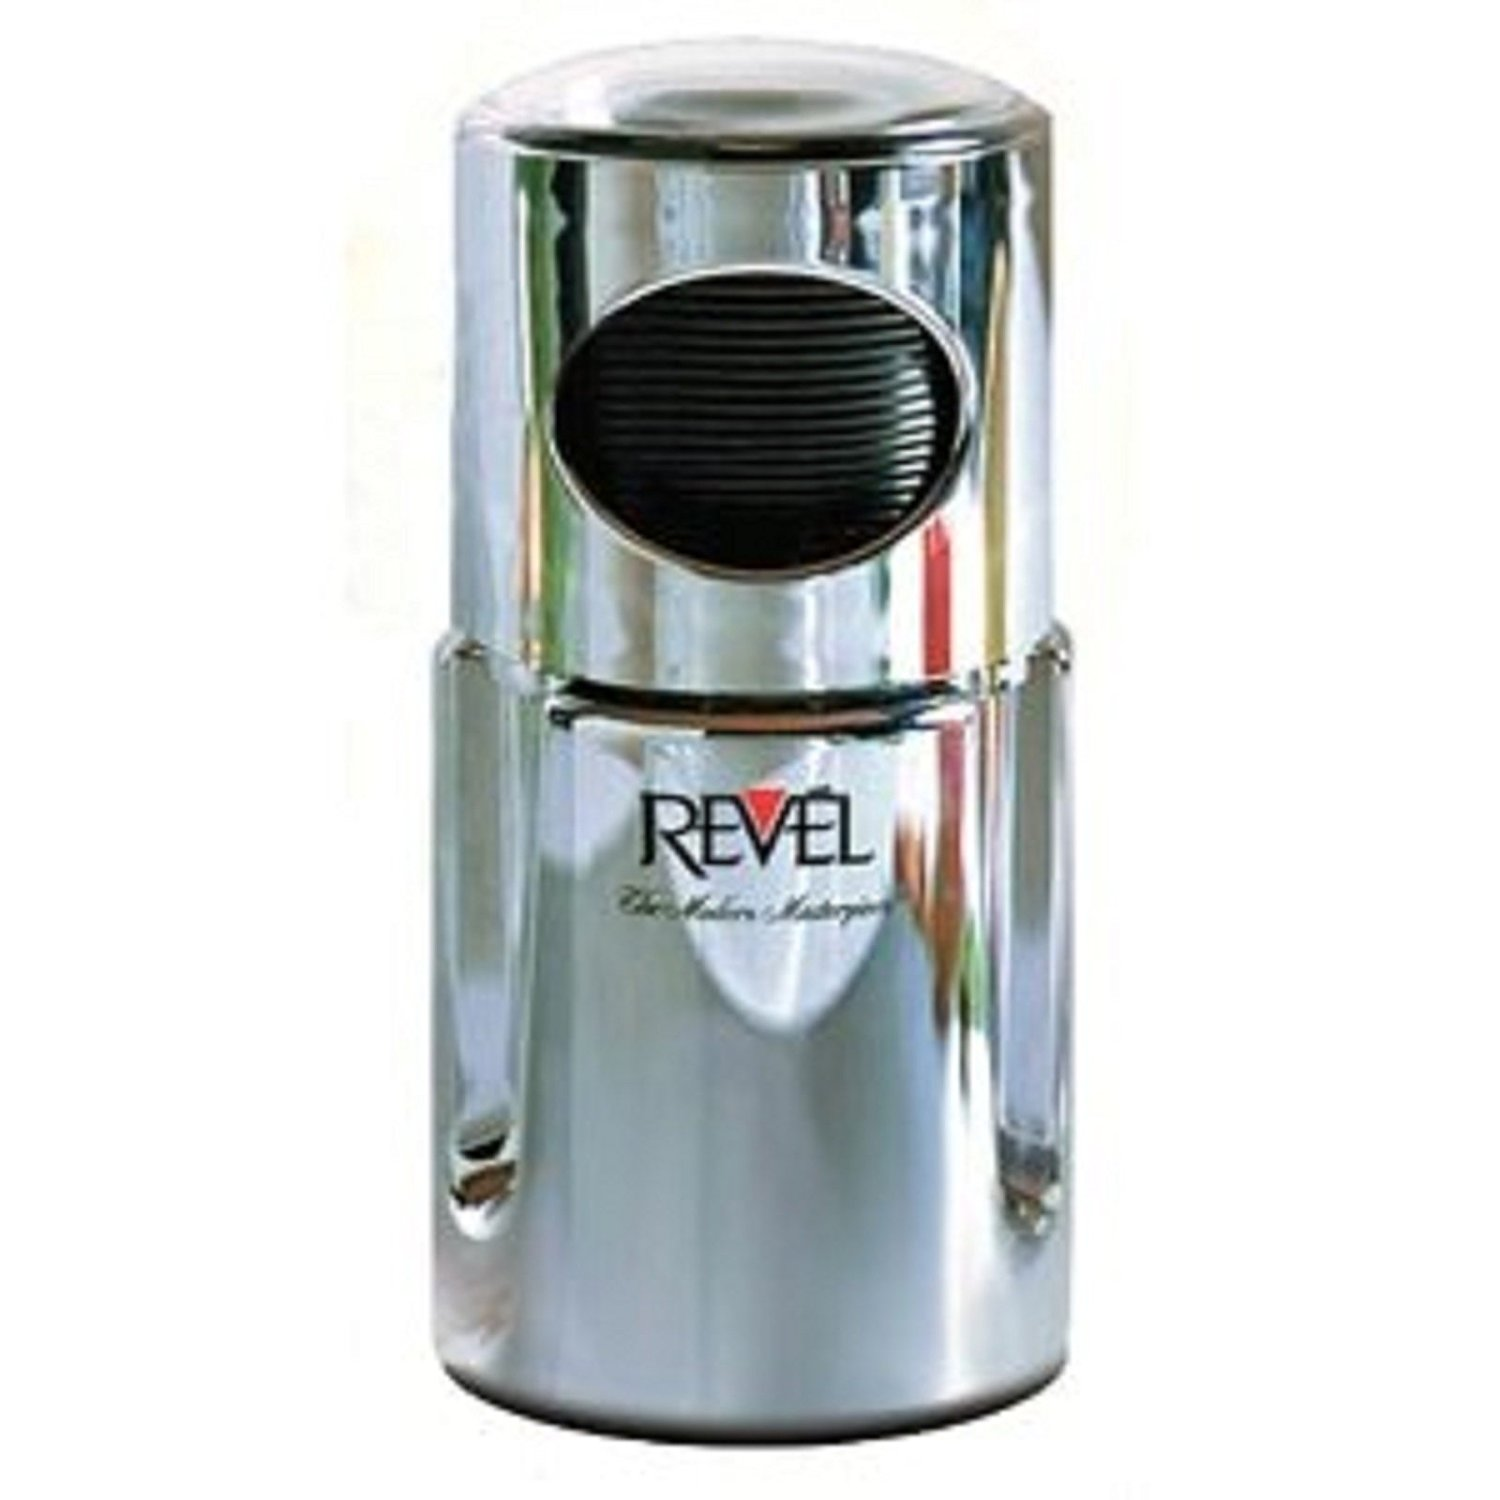 Revel Table Top Wet and Dry Grinder